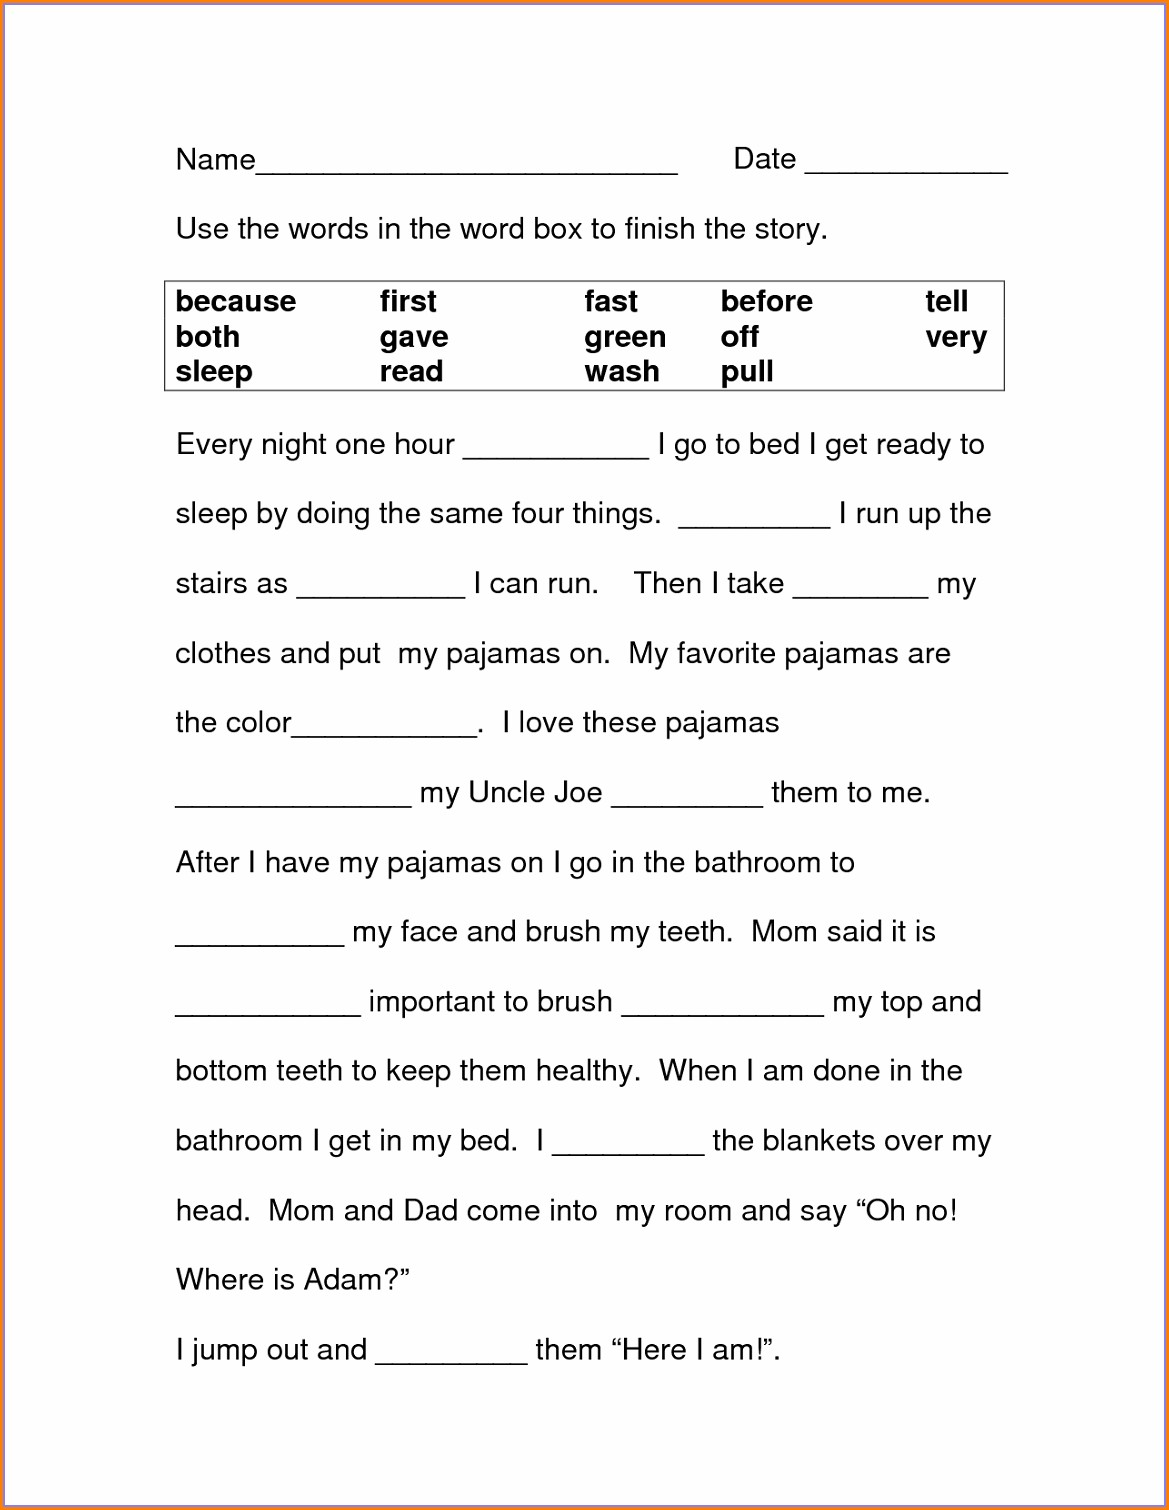 Pronoun Worksheet For Grade 2 With Answers